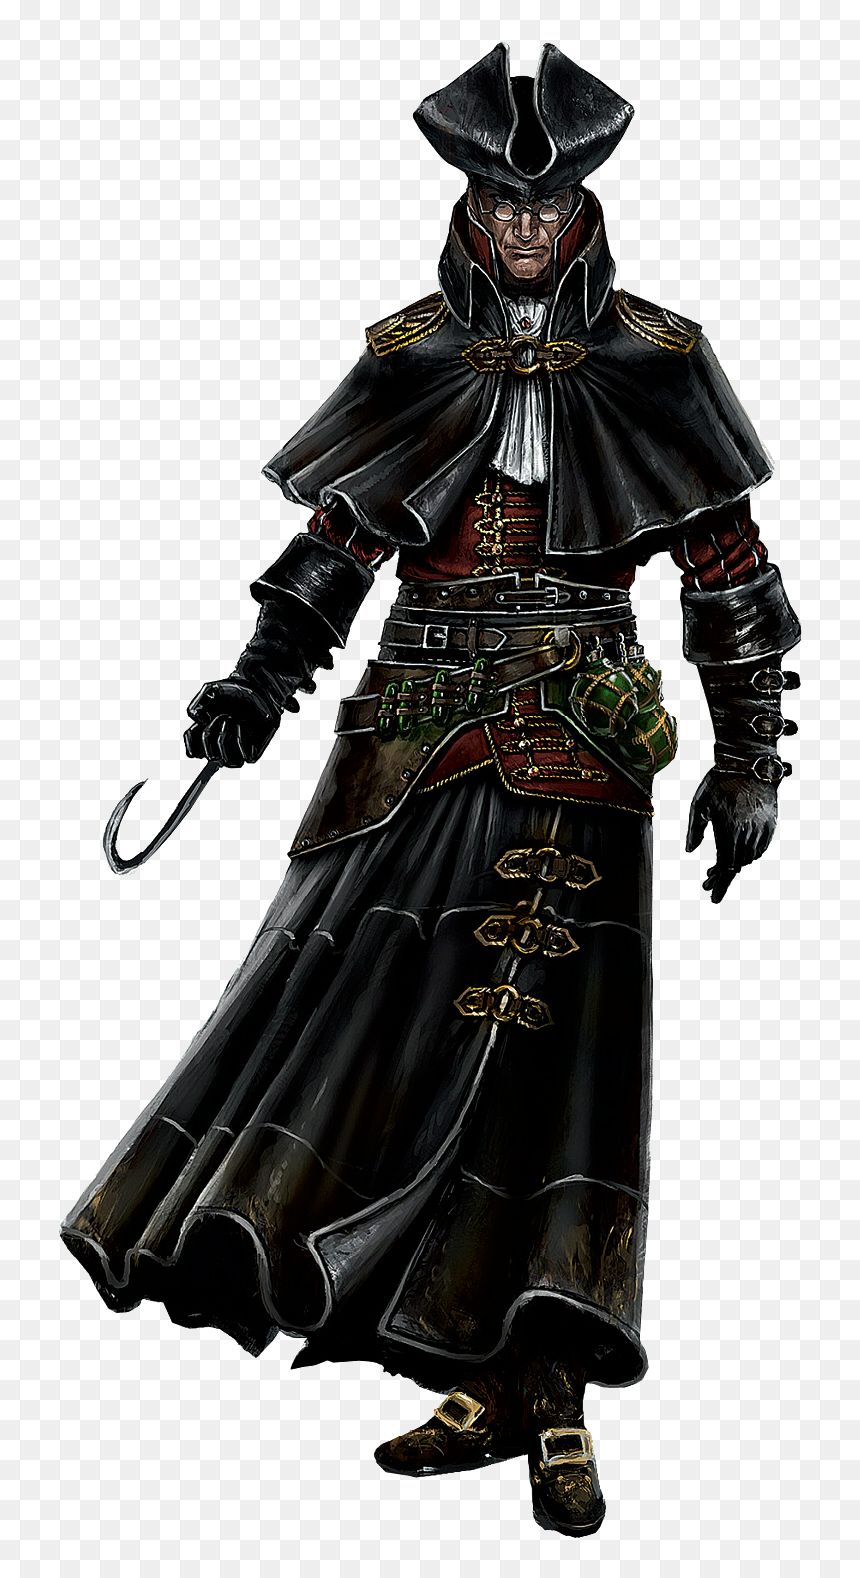 Assassin S Creed Black Flag Character Concept Art Hd Png Download